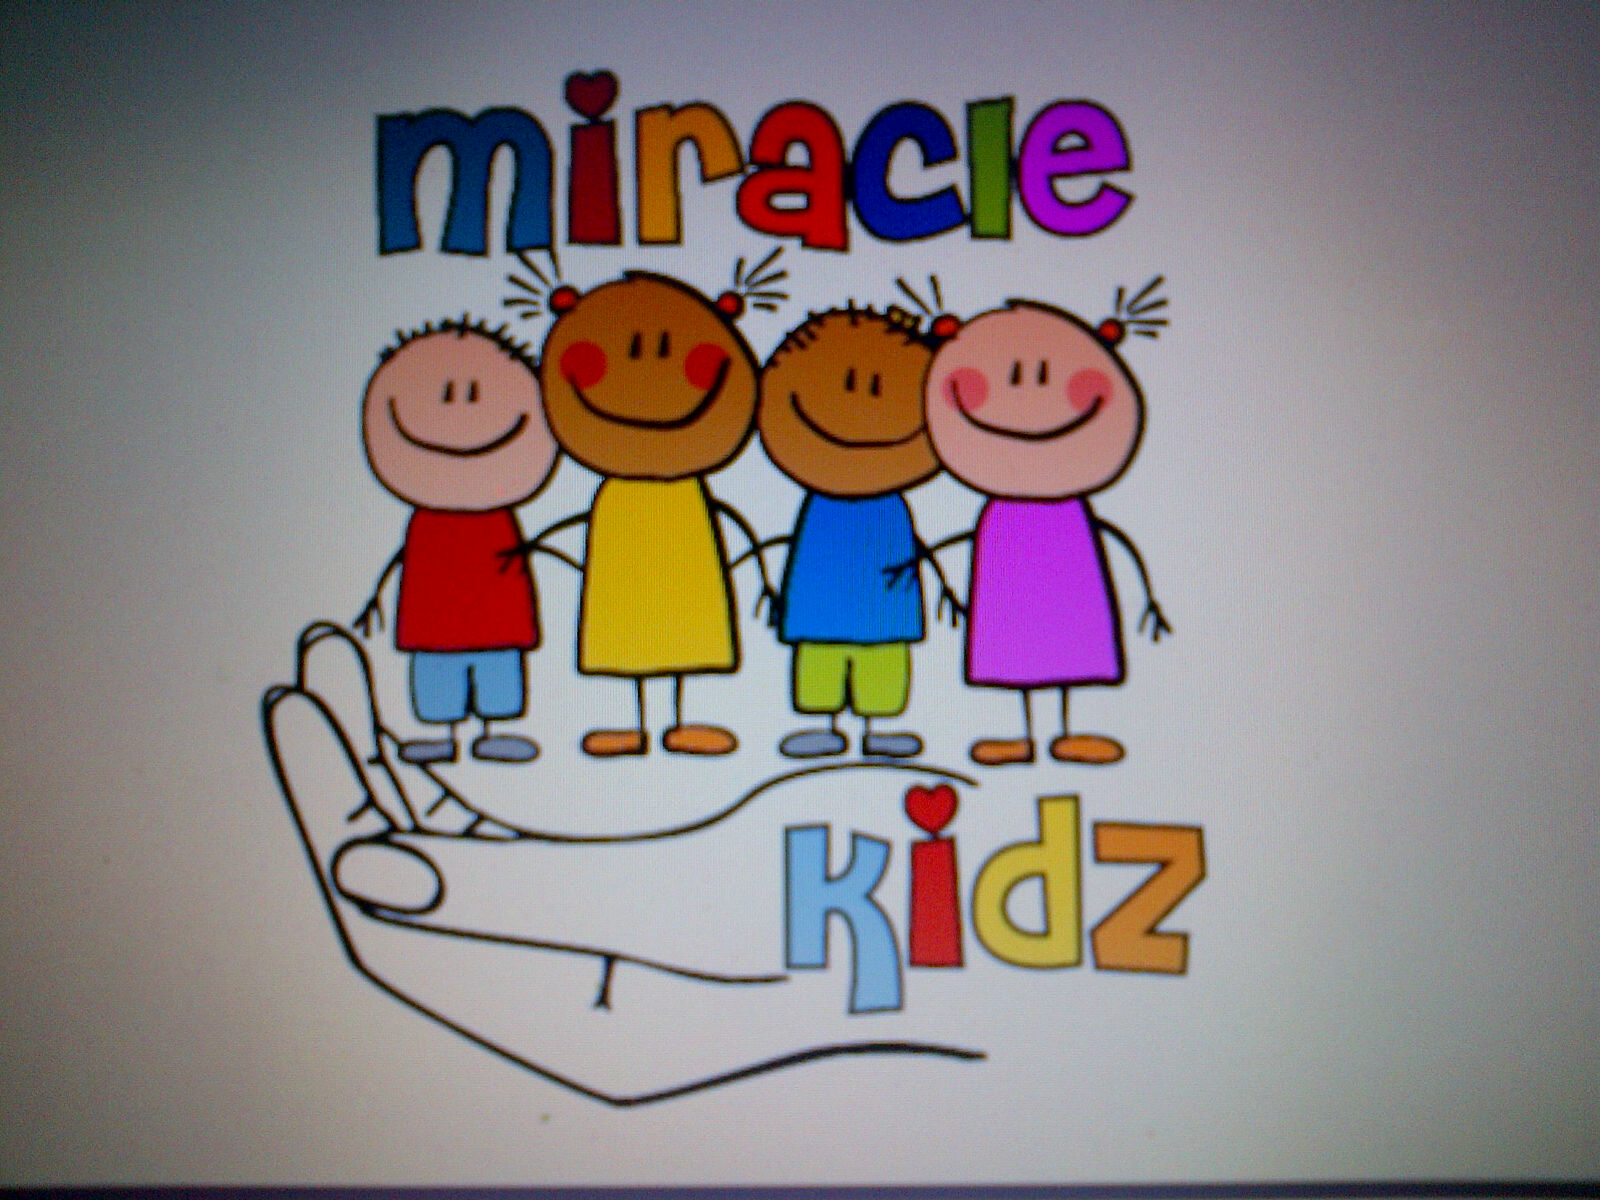 Miracle Kidz Safe House